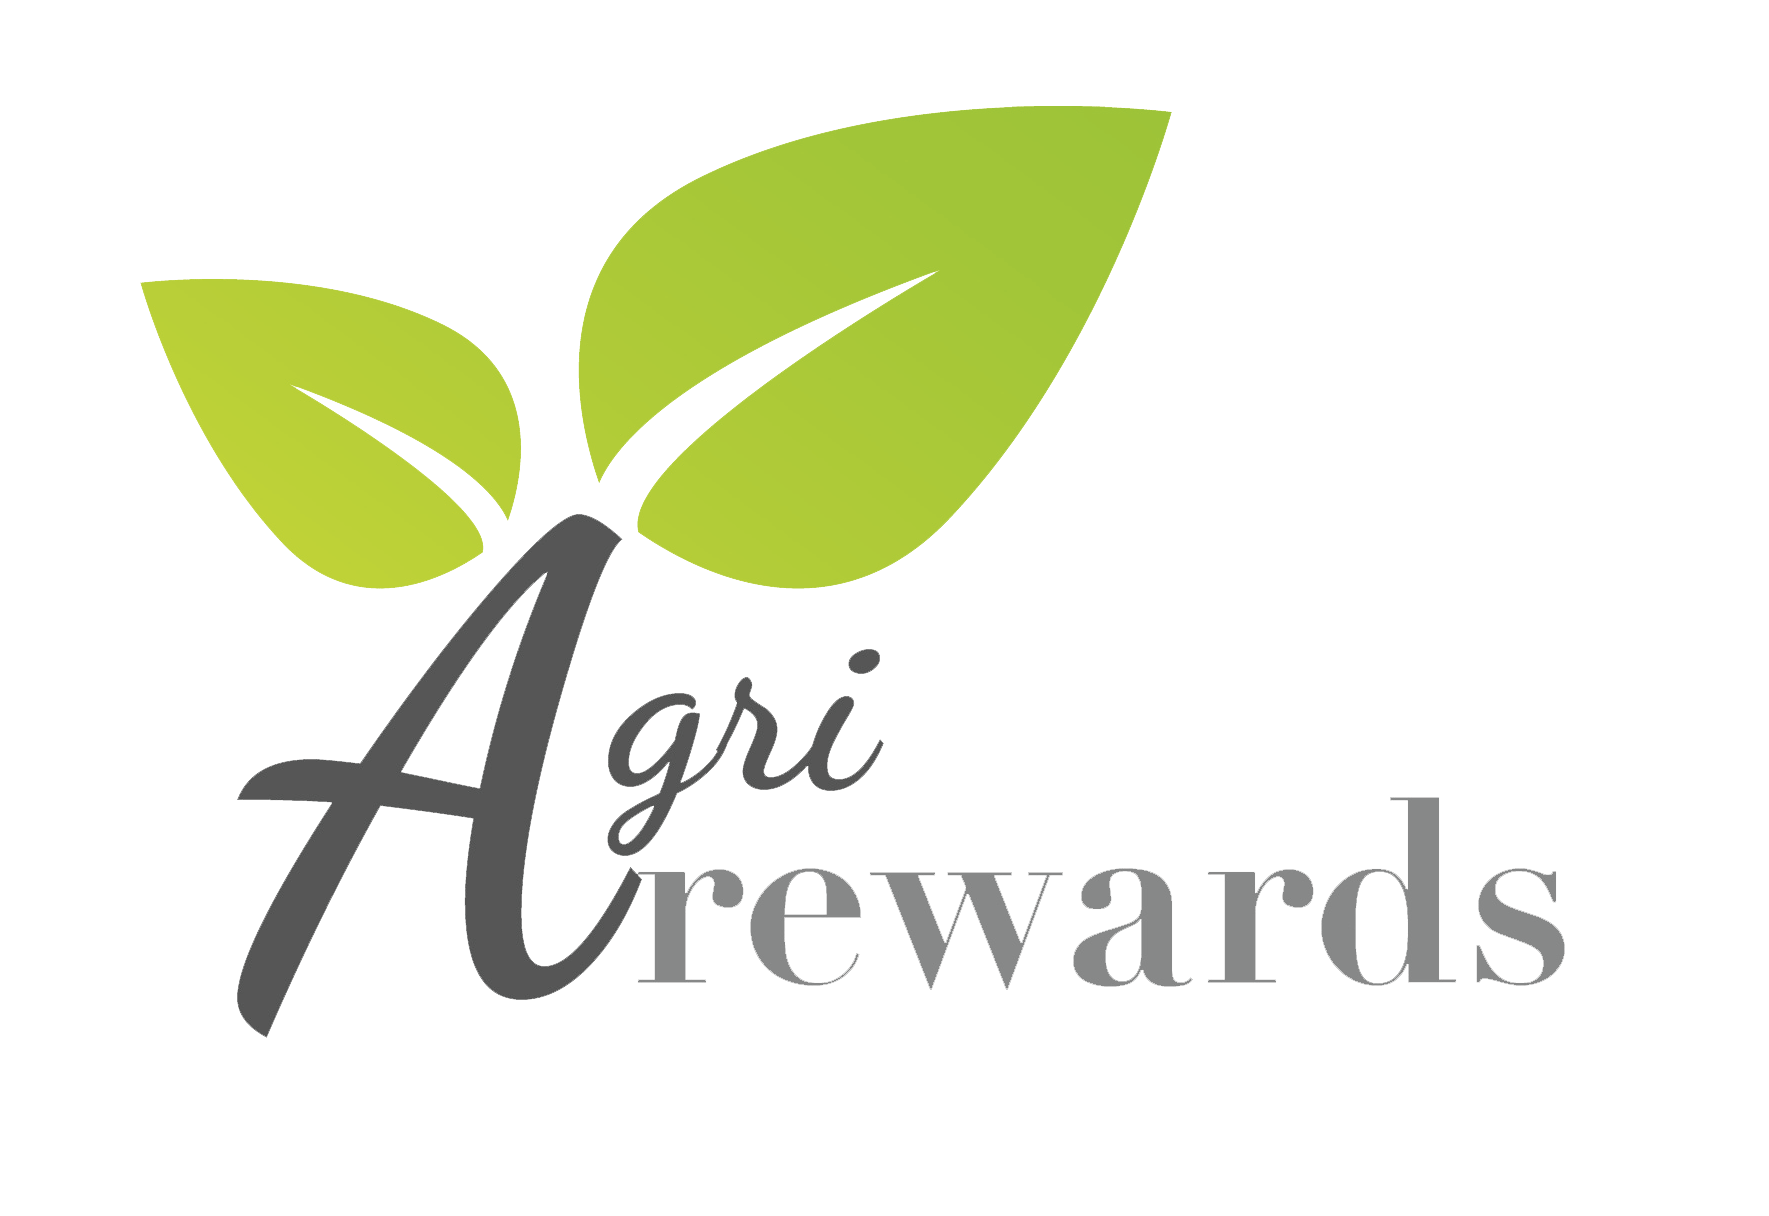 //media.senwes.co.za/Global/Images/AgriRewards/main_logo.png